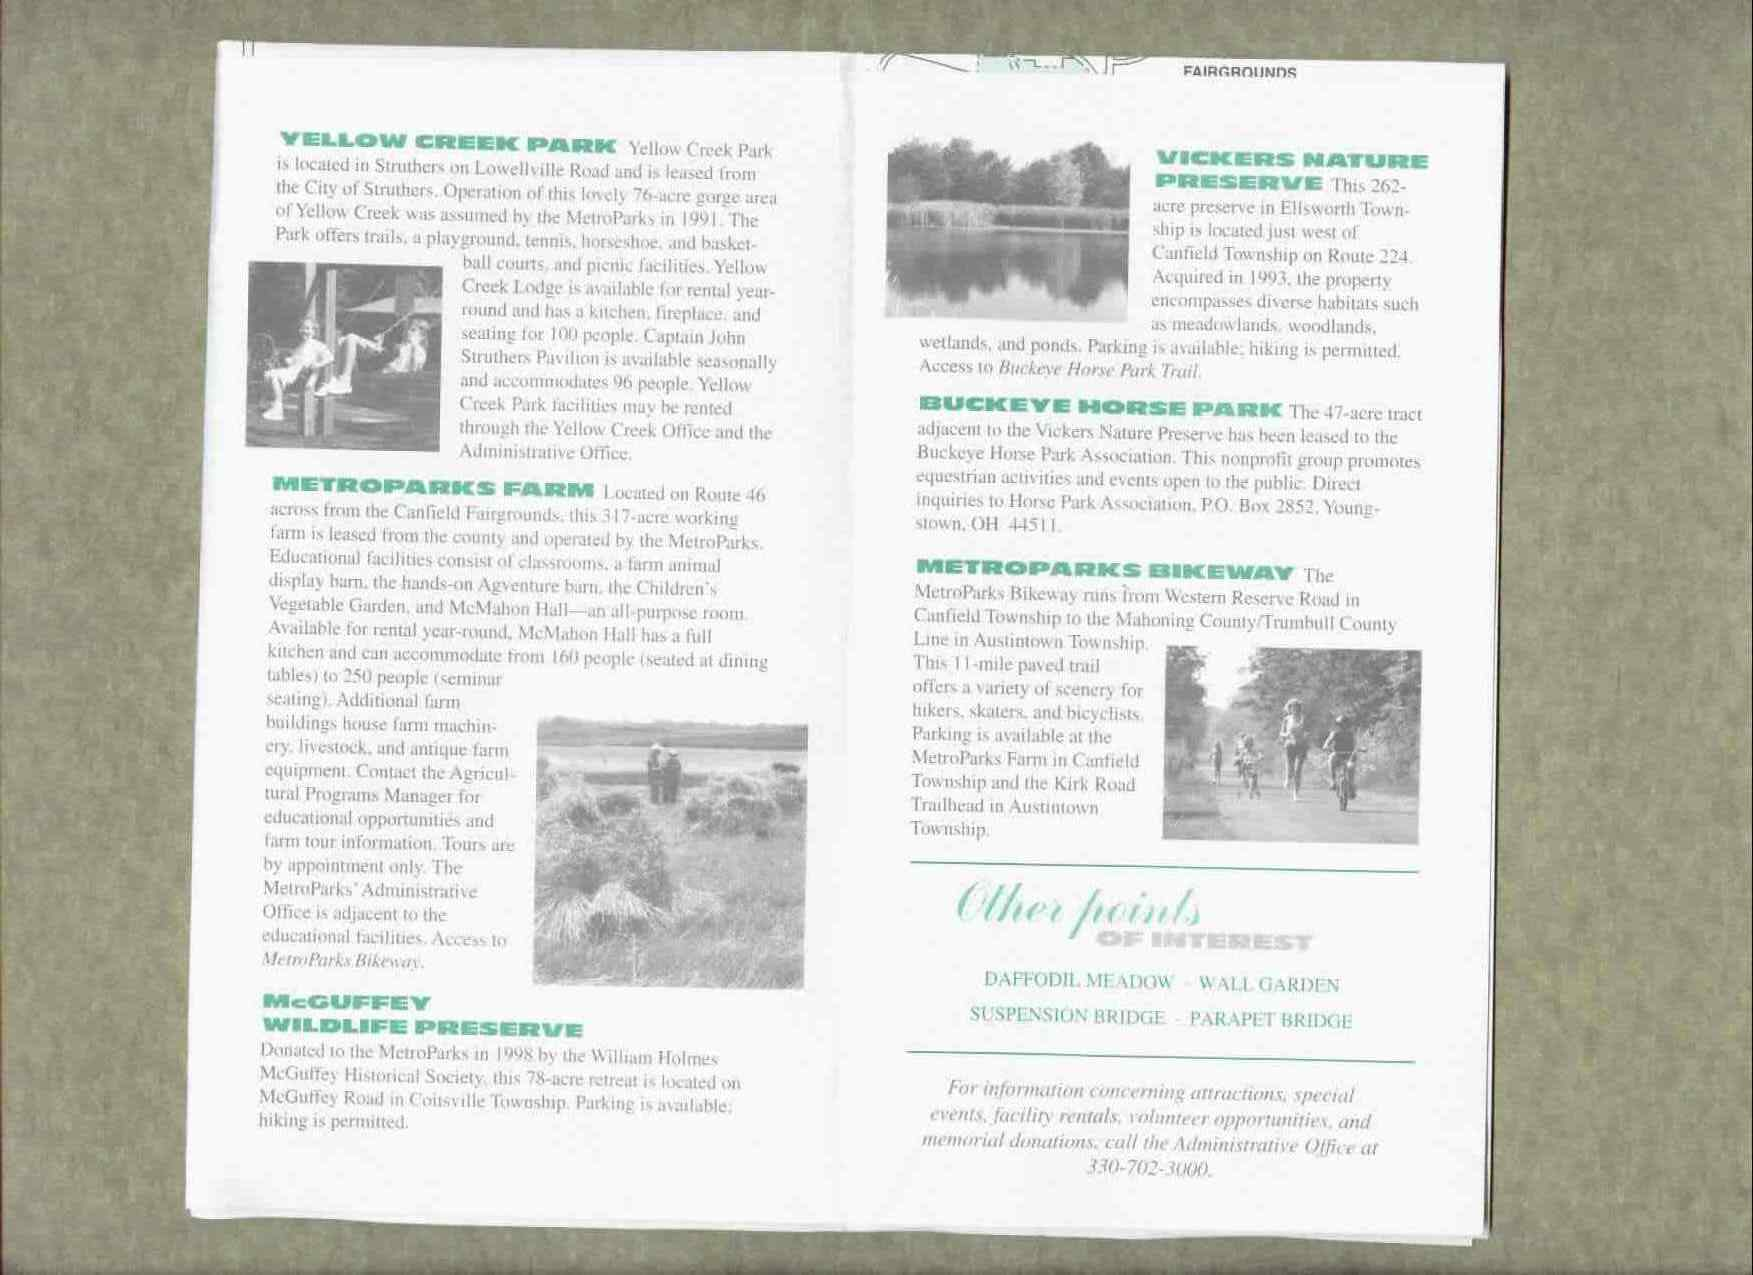 Mill Creek Park Brochure Part 5